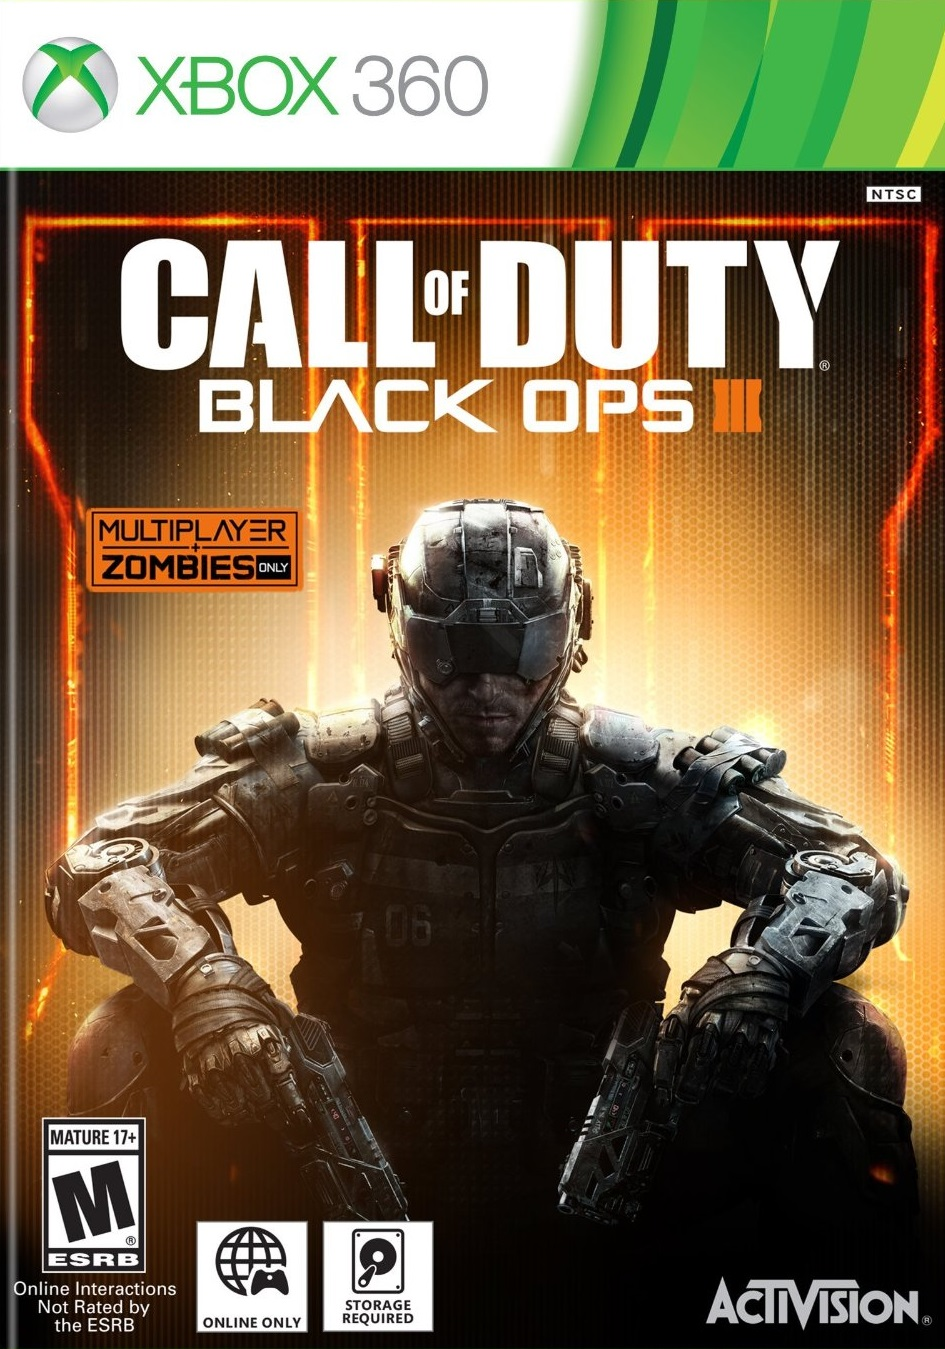 Call Of Duty Black Ops III ESPAÑOL XBOX 360 Cover Caratula